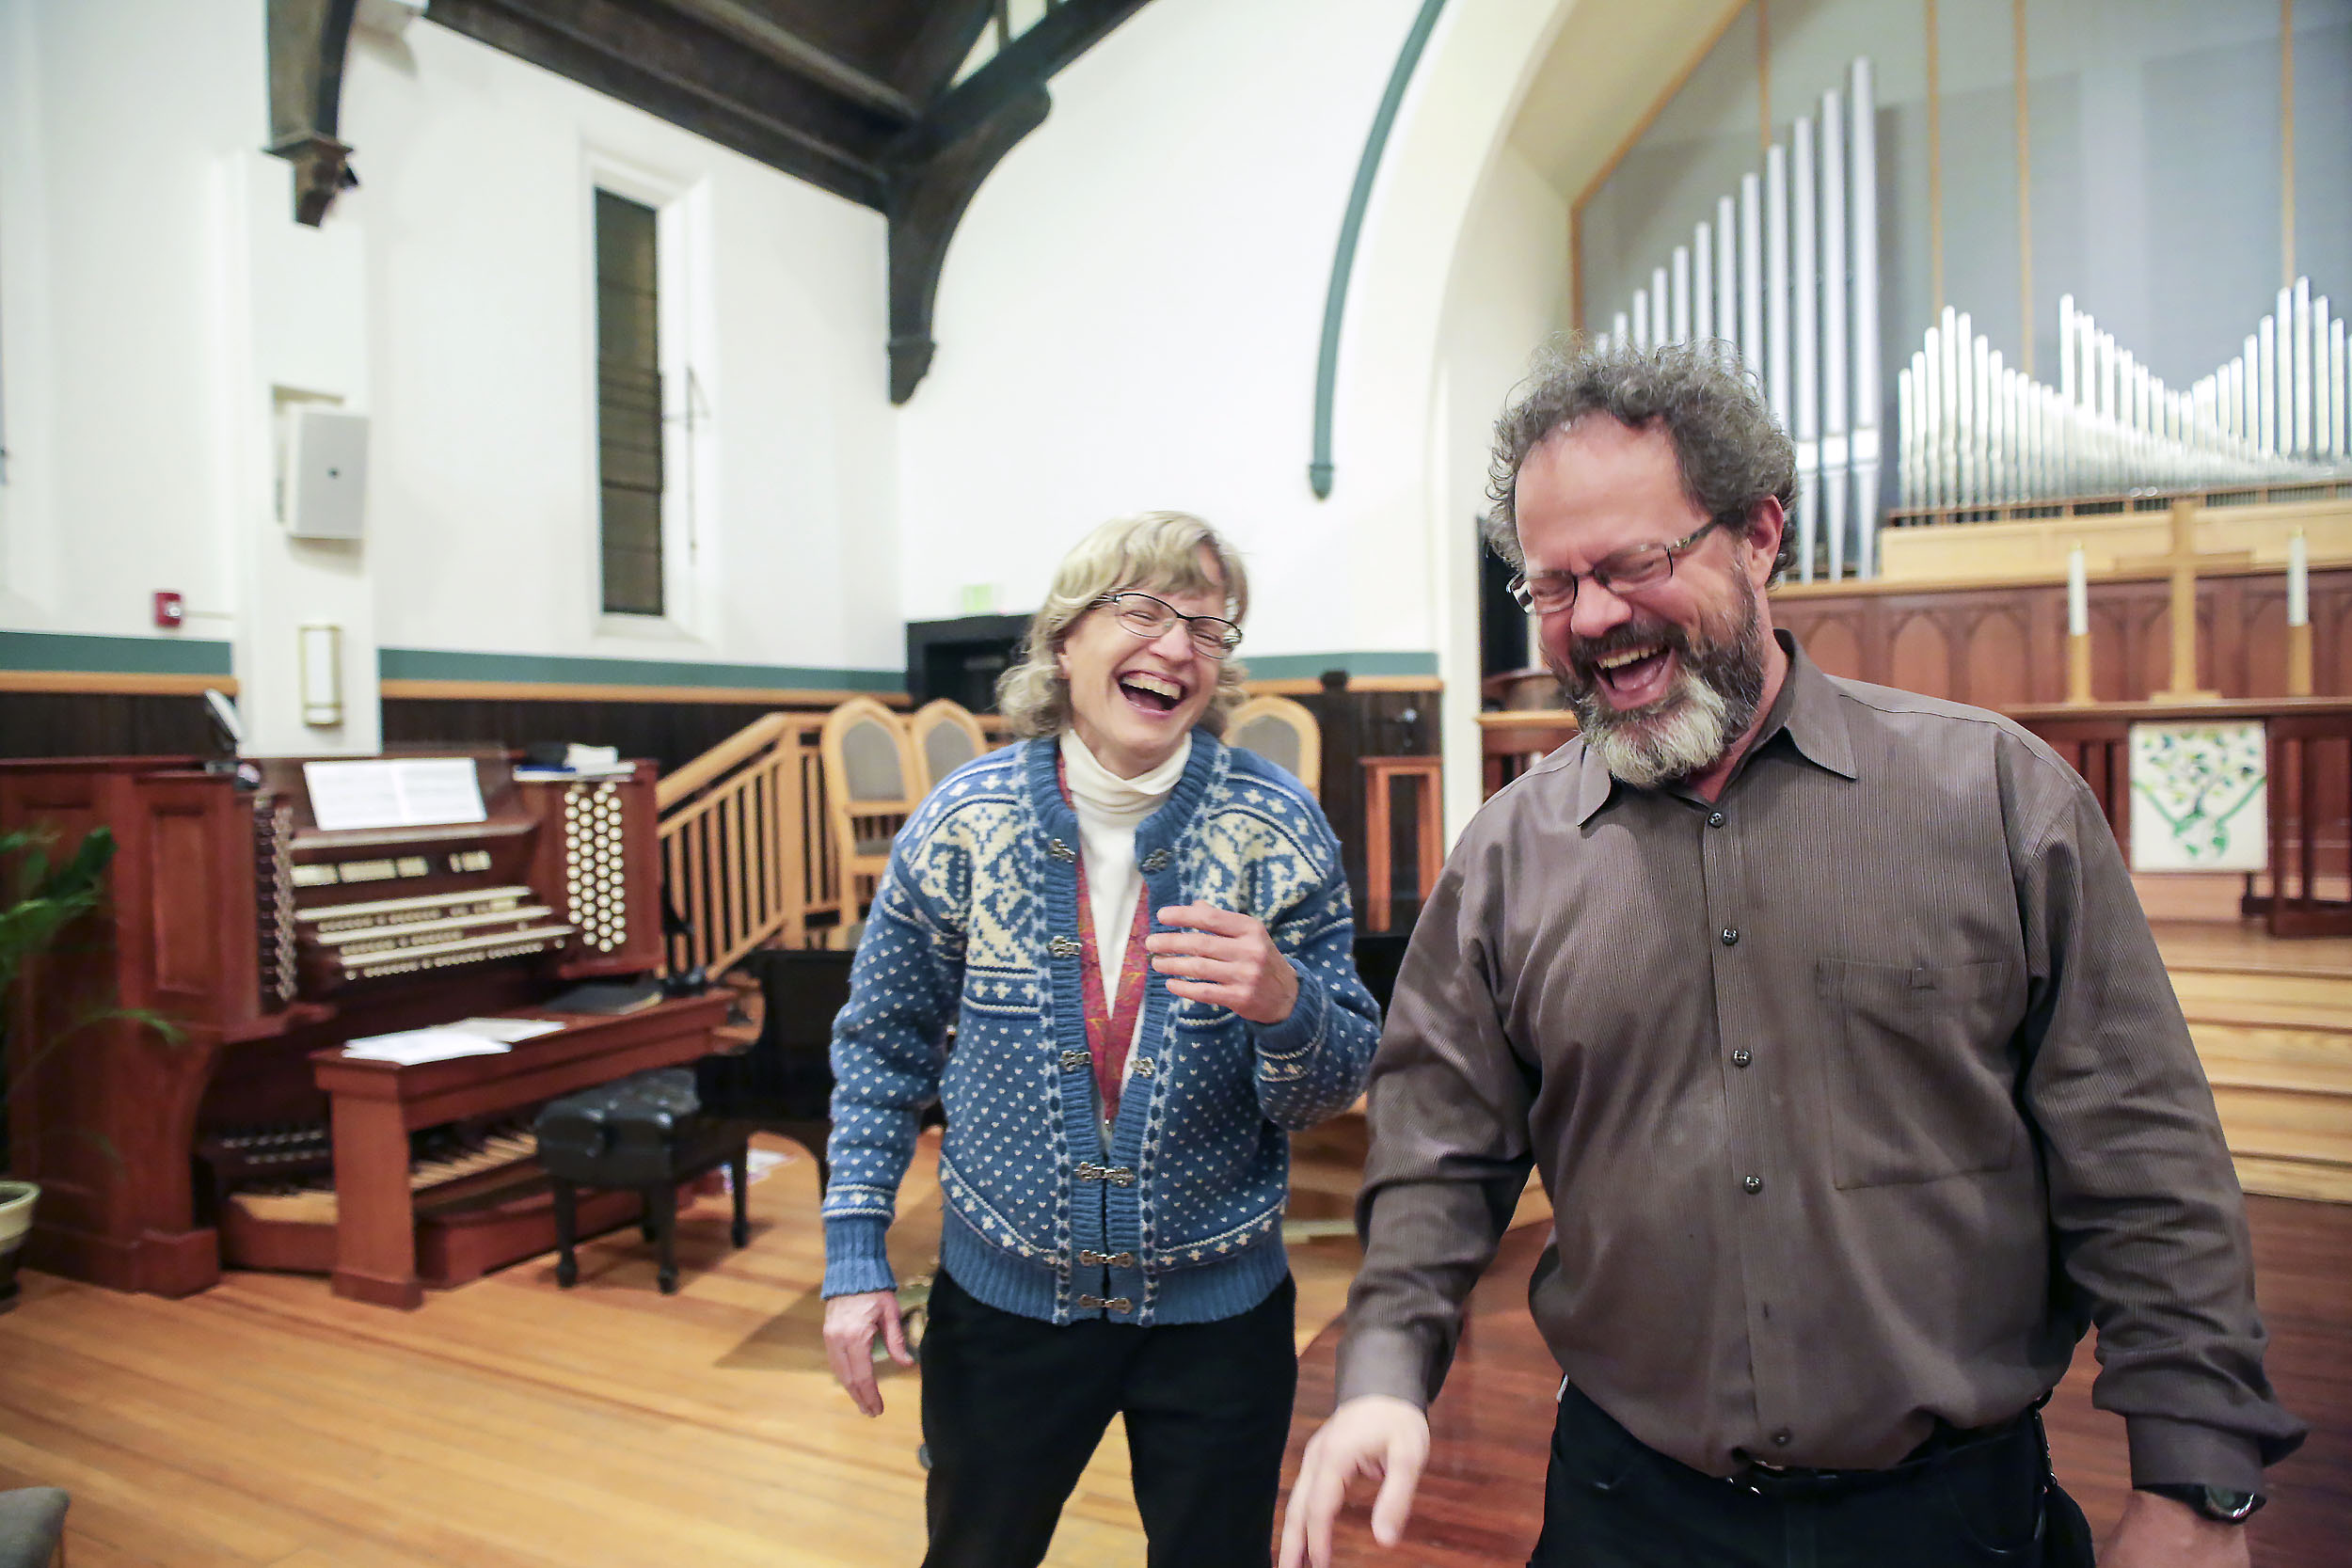 Kevin Pettit, 50, laughs with girlfriend Mary Magee after choir rehearsal at the First Congressional Church in Boulder, Colorado, on April 26, 2018. Pettit and Magee both love singing and have been together for five years.